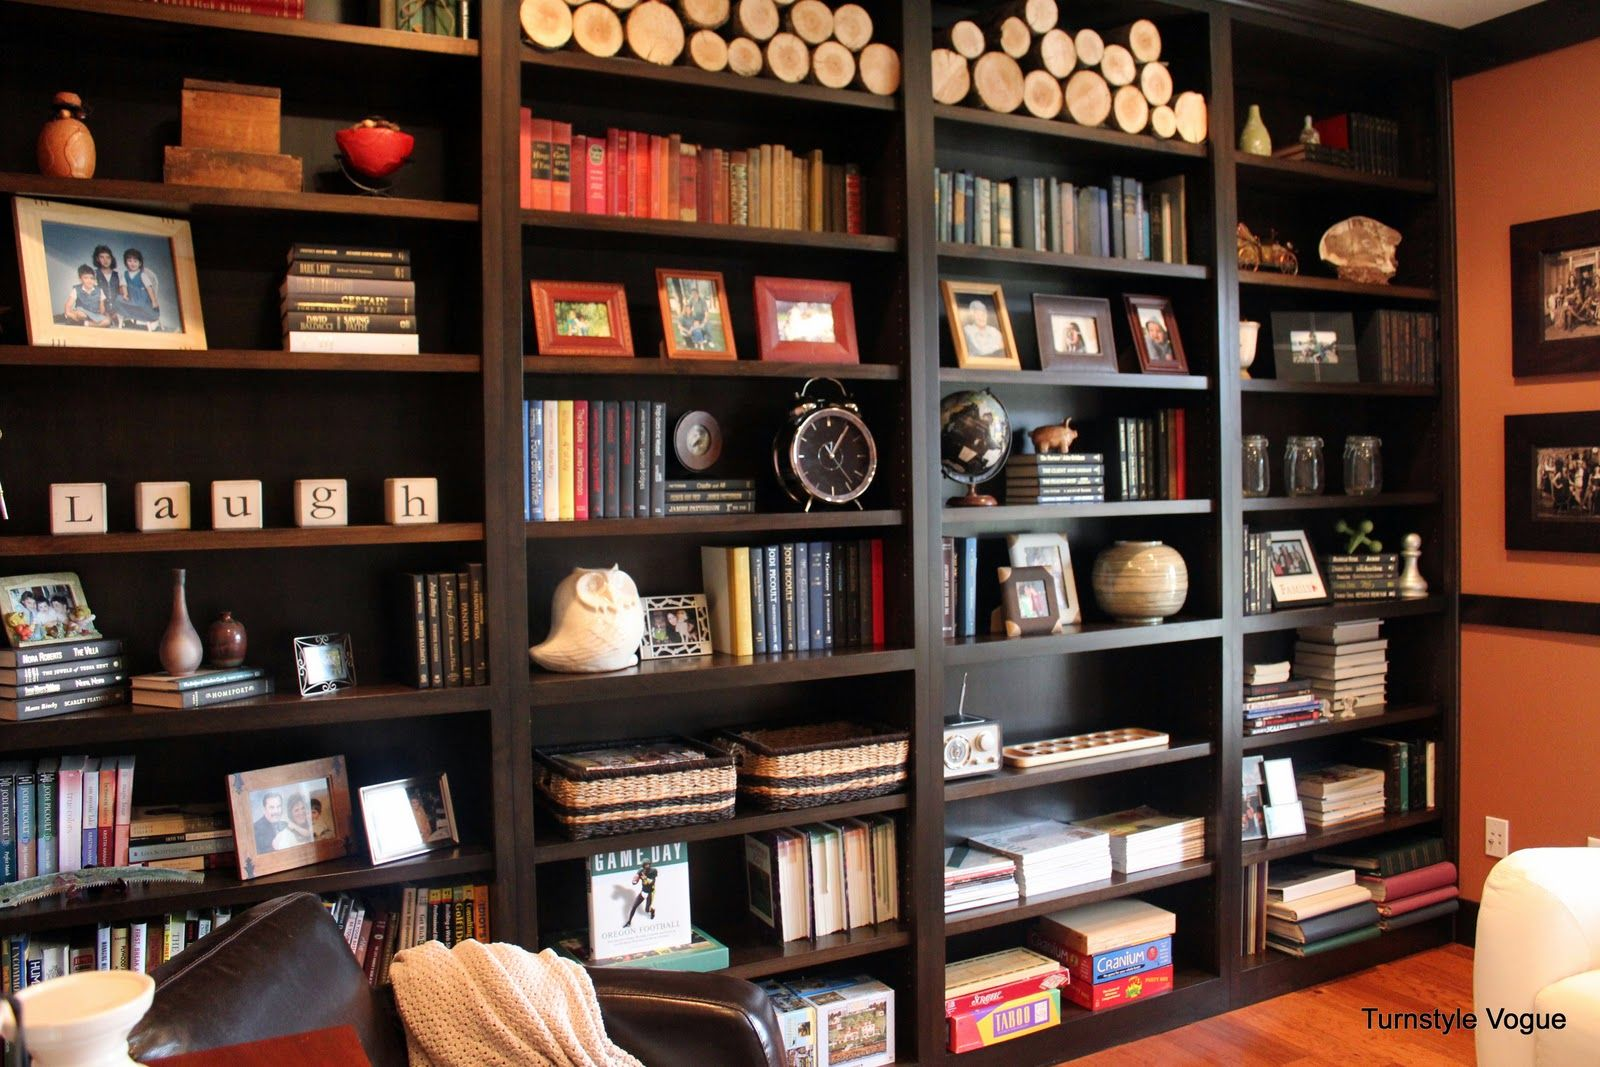 Dark Shelving Are Perfect For A More Masculine And Sophisticated Look Decorating Bookshelves Bookshelf Decor Bookshelf Design